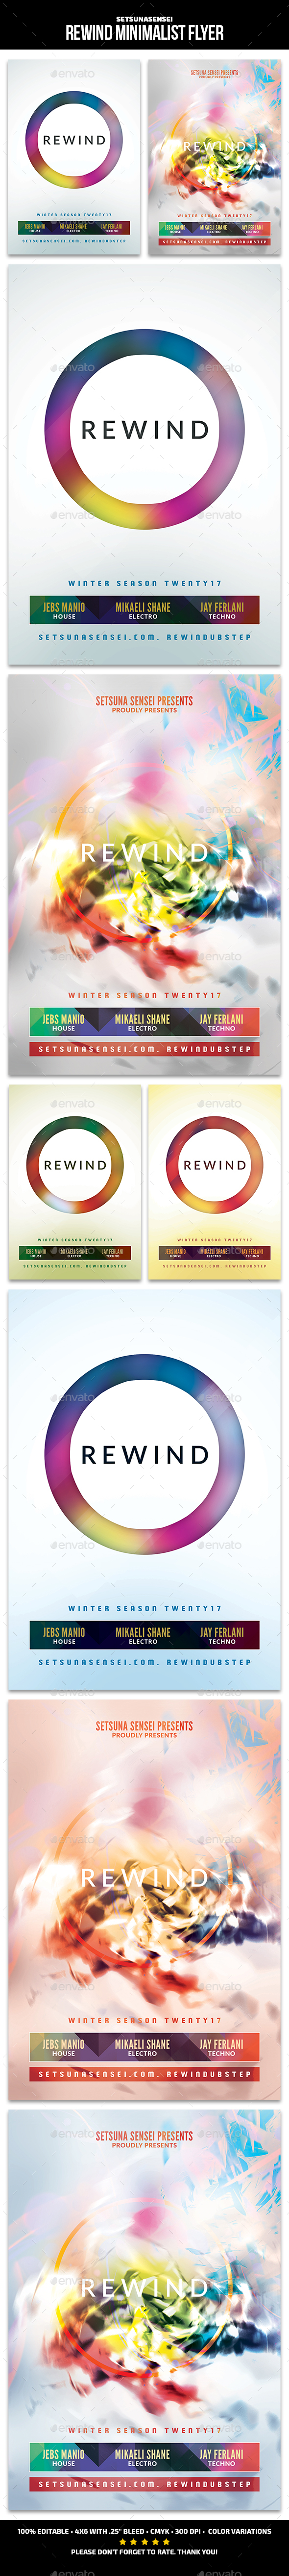 Rewind Minimalist Flyer - Clubs & Parties Events